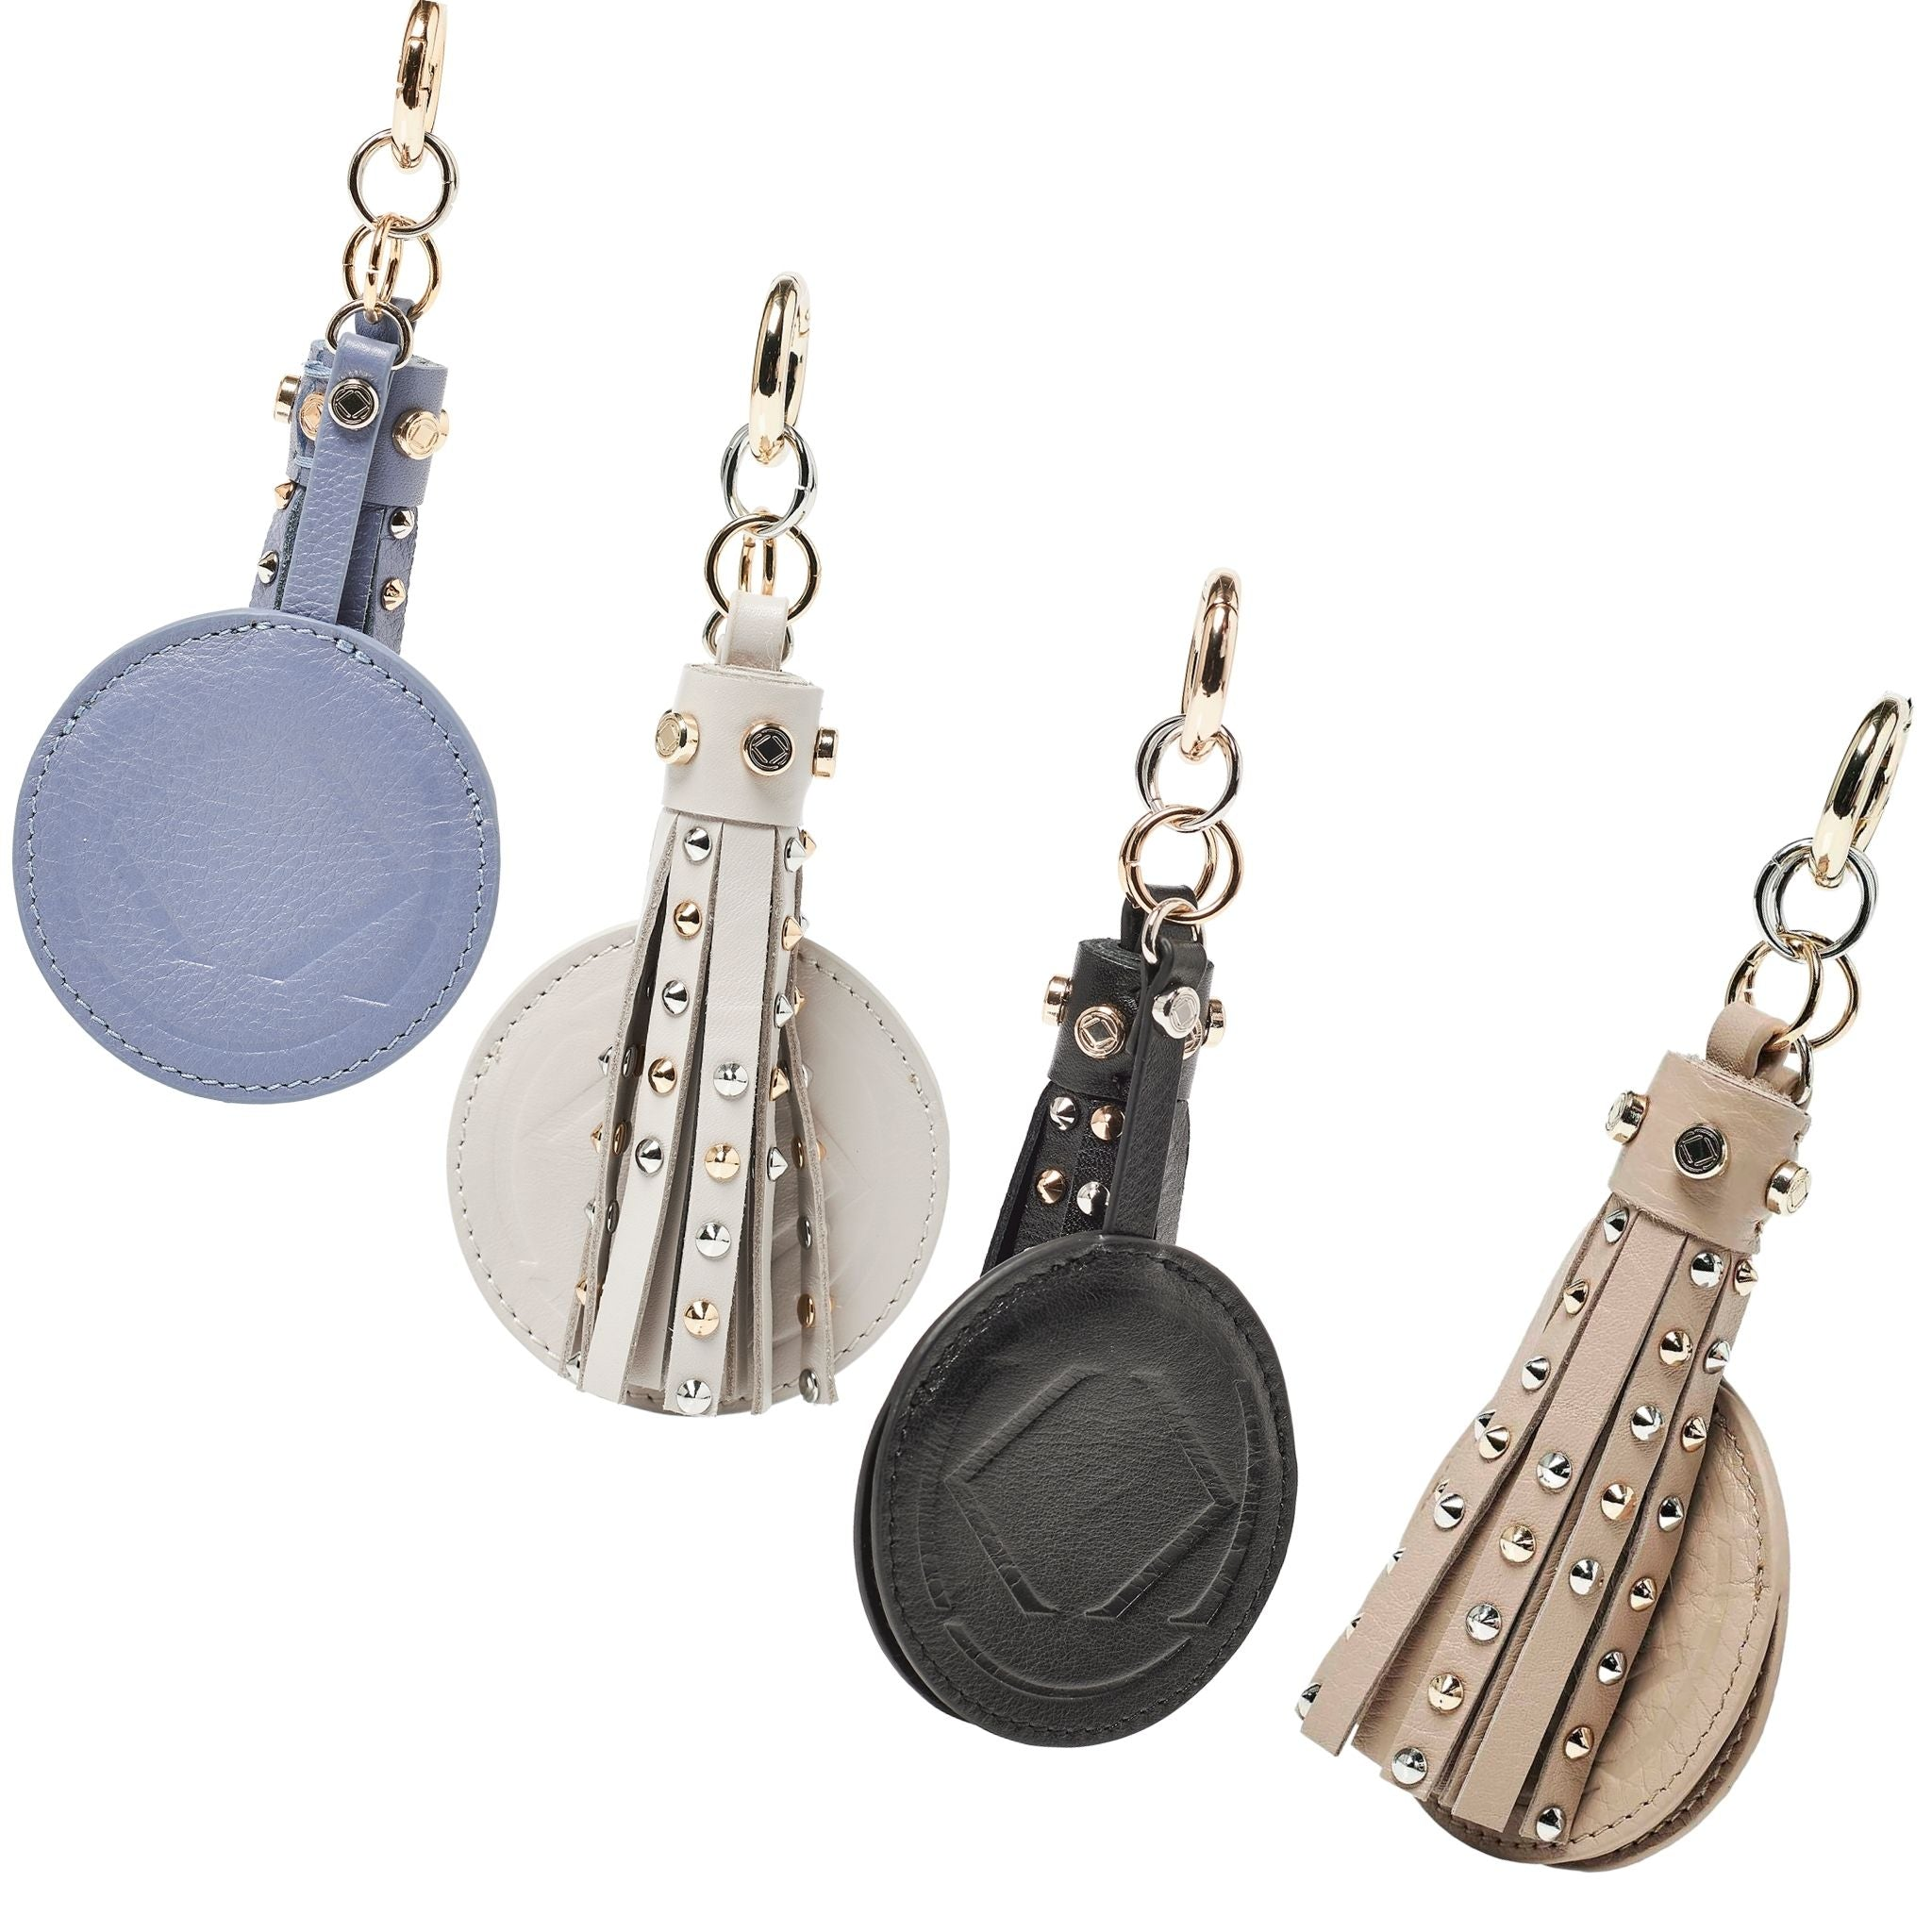 Warrior Midi With Mirror Leather Keyring Tassel - Pre-order now Open For March End Delivery